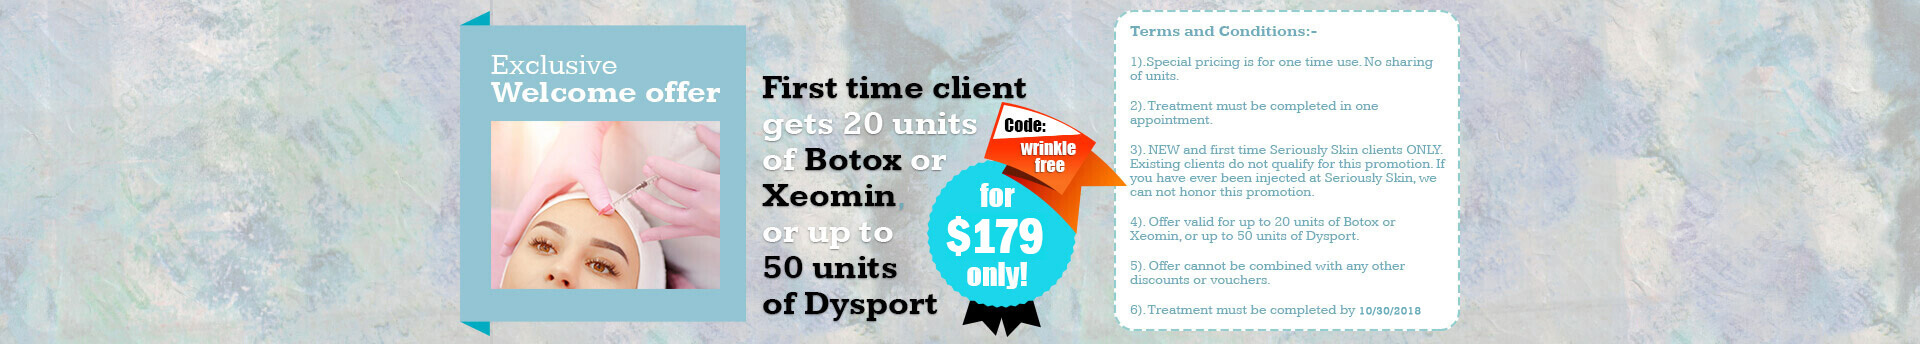 First time client special for Botox